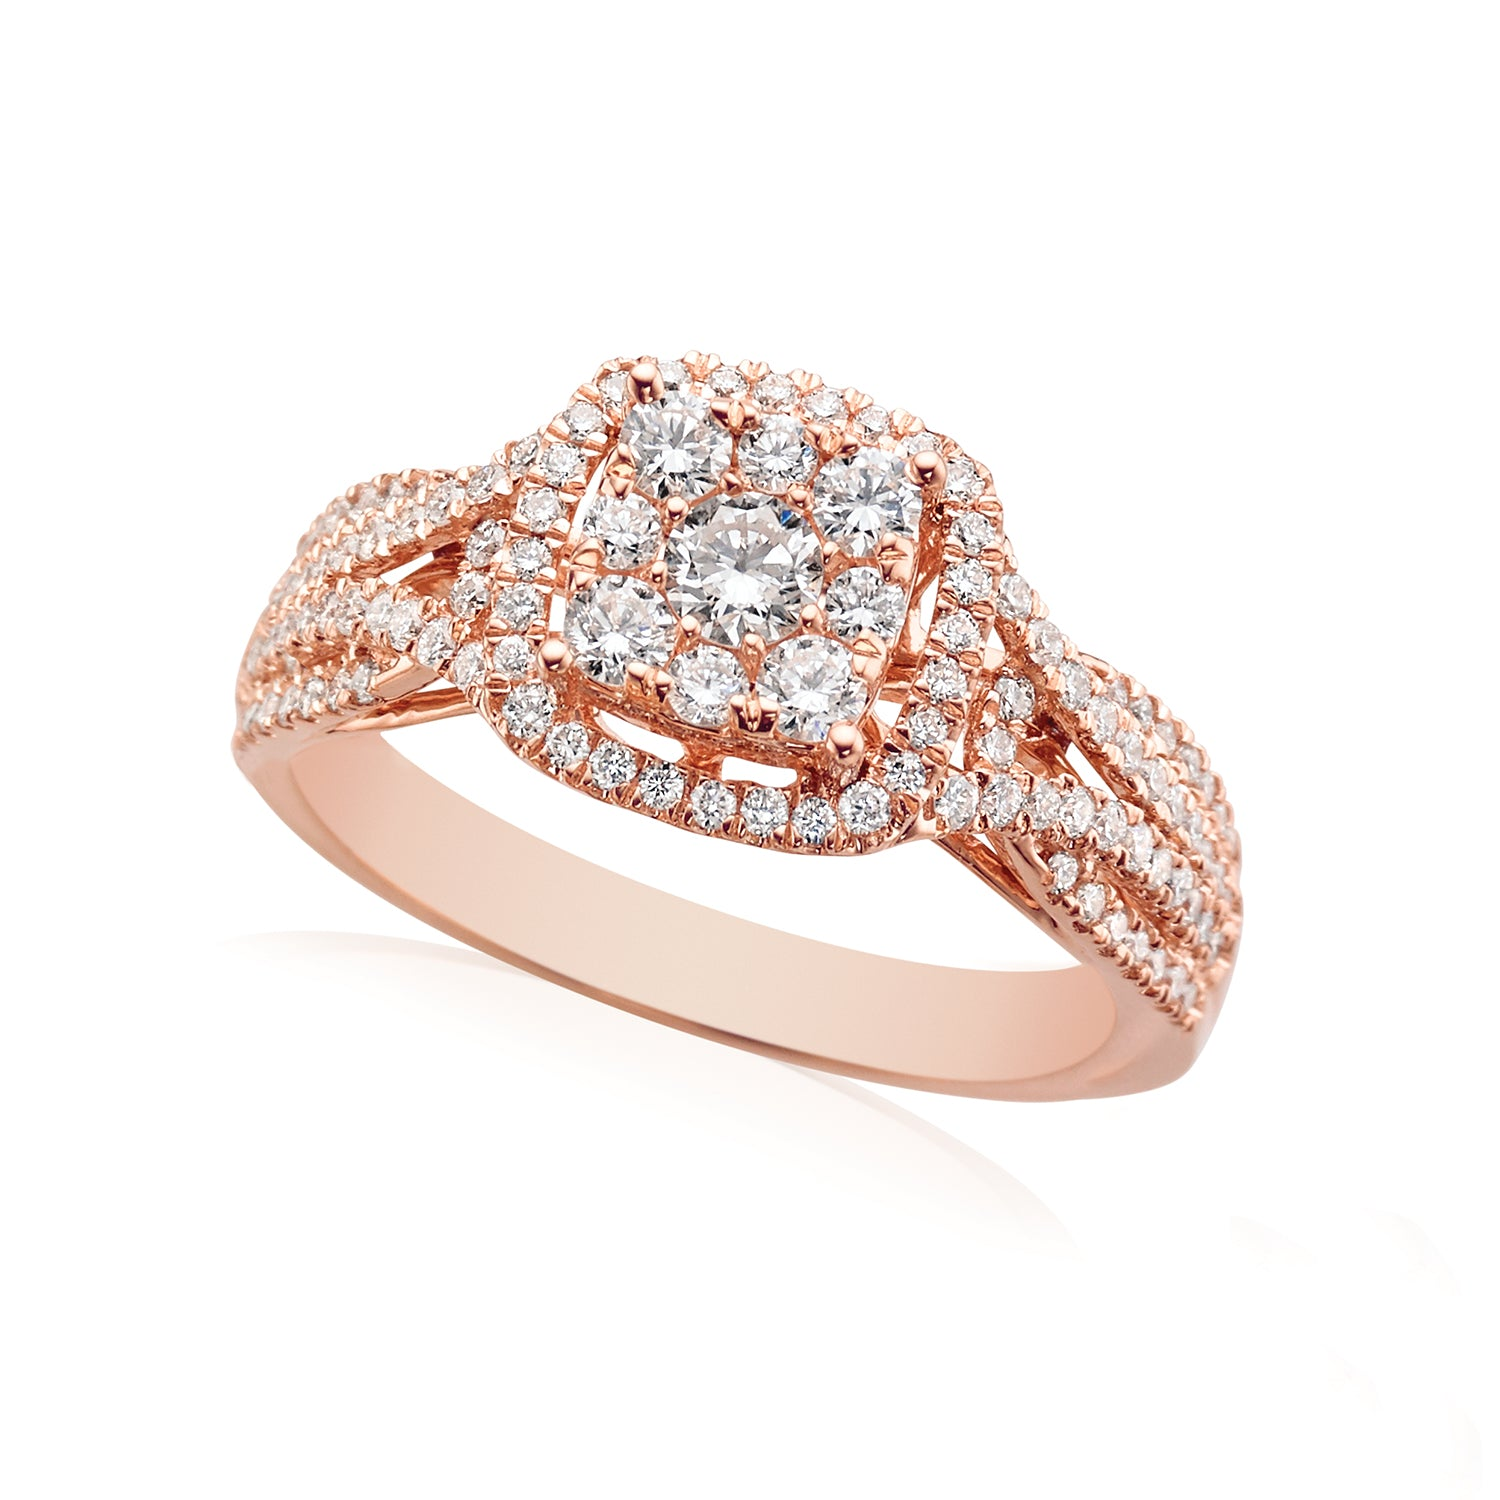 18ct Rose Gold Round Brilliant Cut with 0.80 CARAT tw of Diamonds